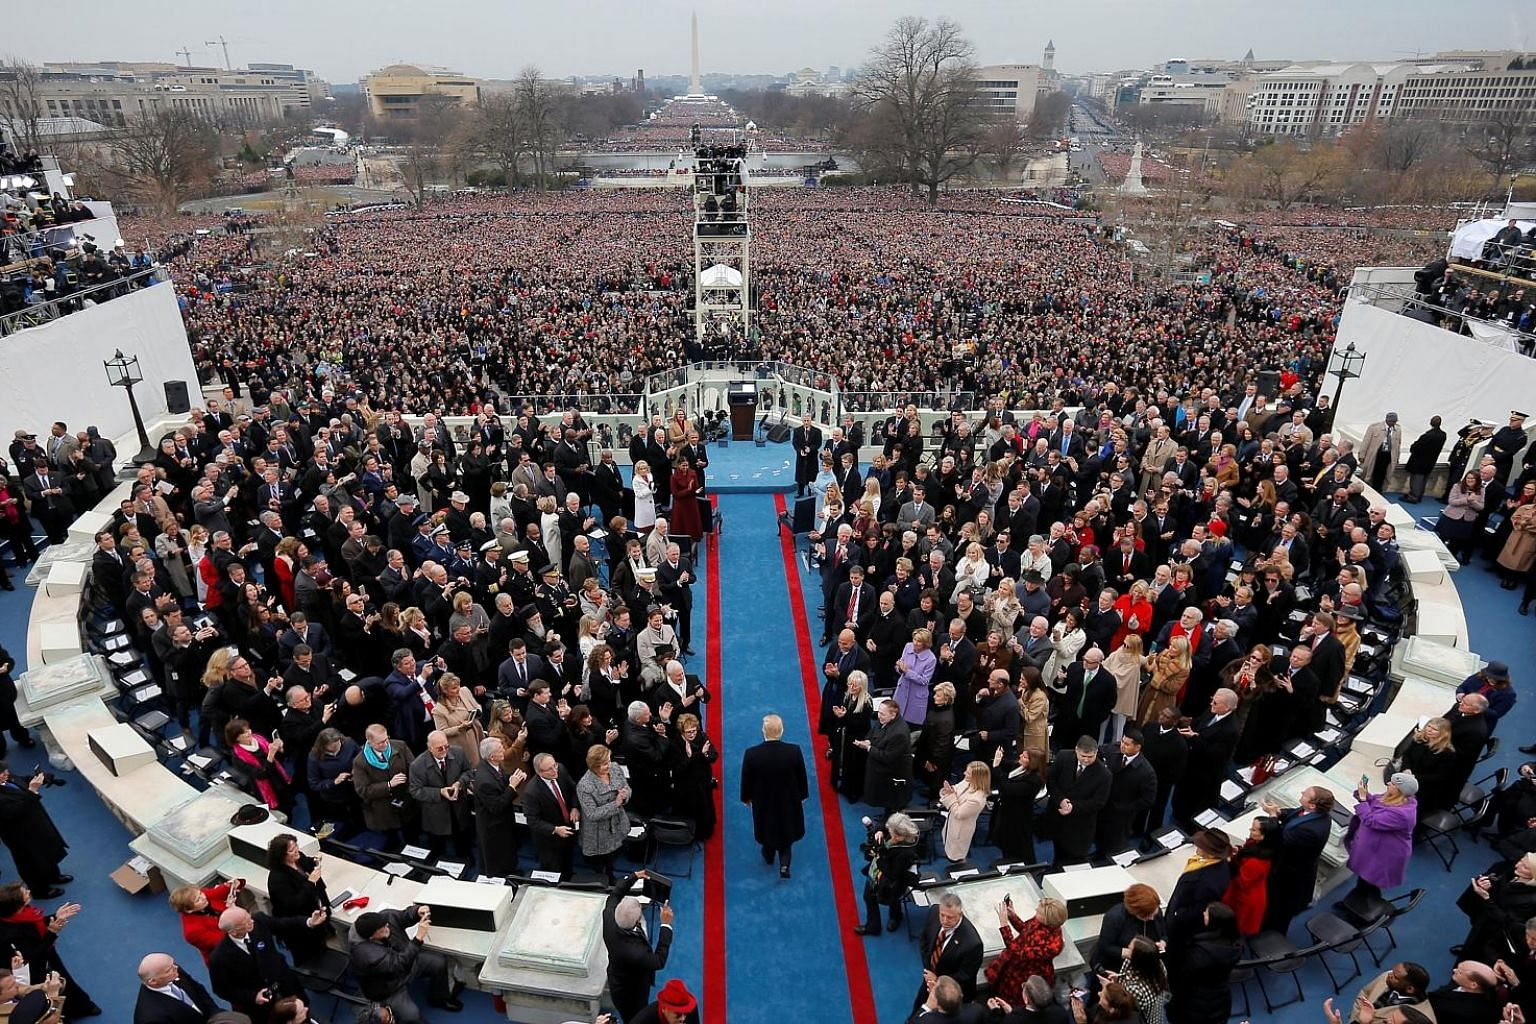 """Former White House press secretary Sean Spicer called the crowds watching Mr Donald Trump's presidential inauguration in January (above) the largest, """"period"""", despite photographs showing otherwise."""